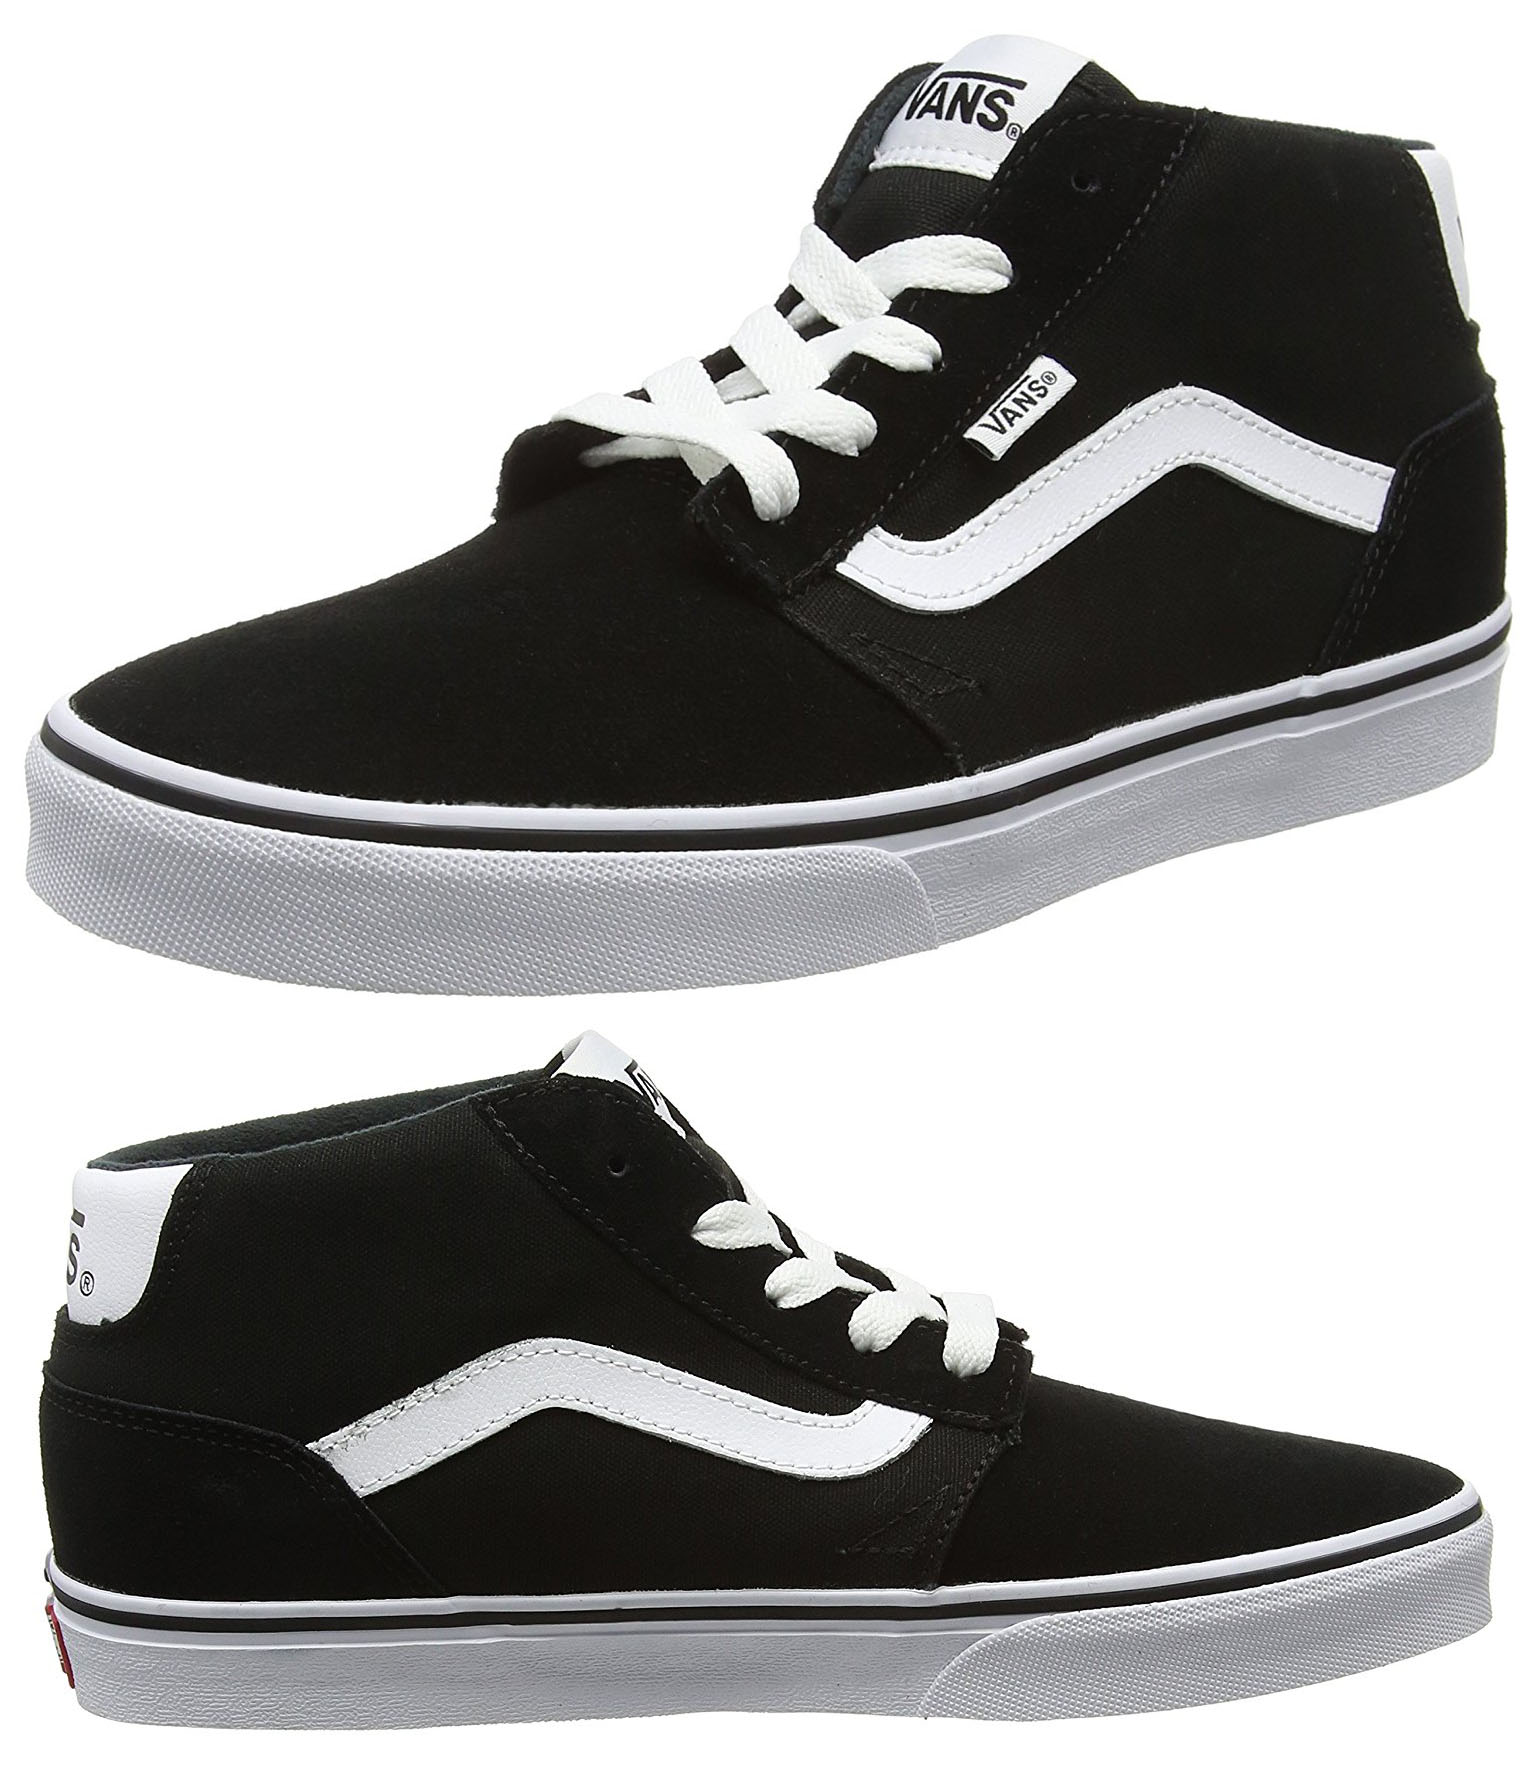 Fila Casual Shoes Without Laces